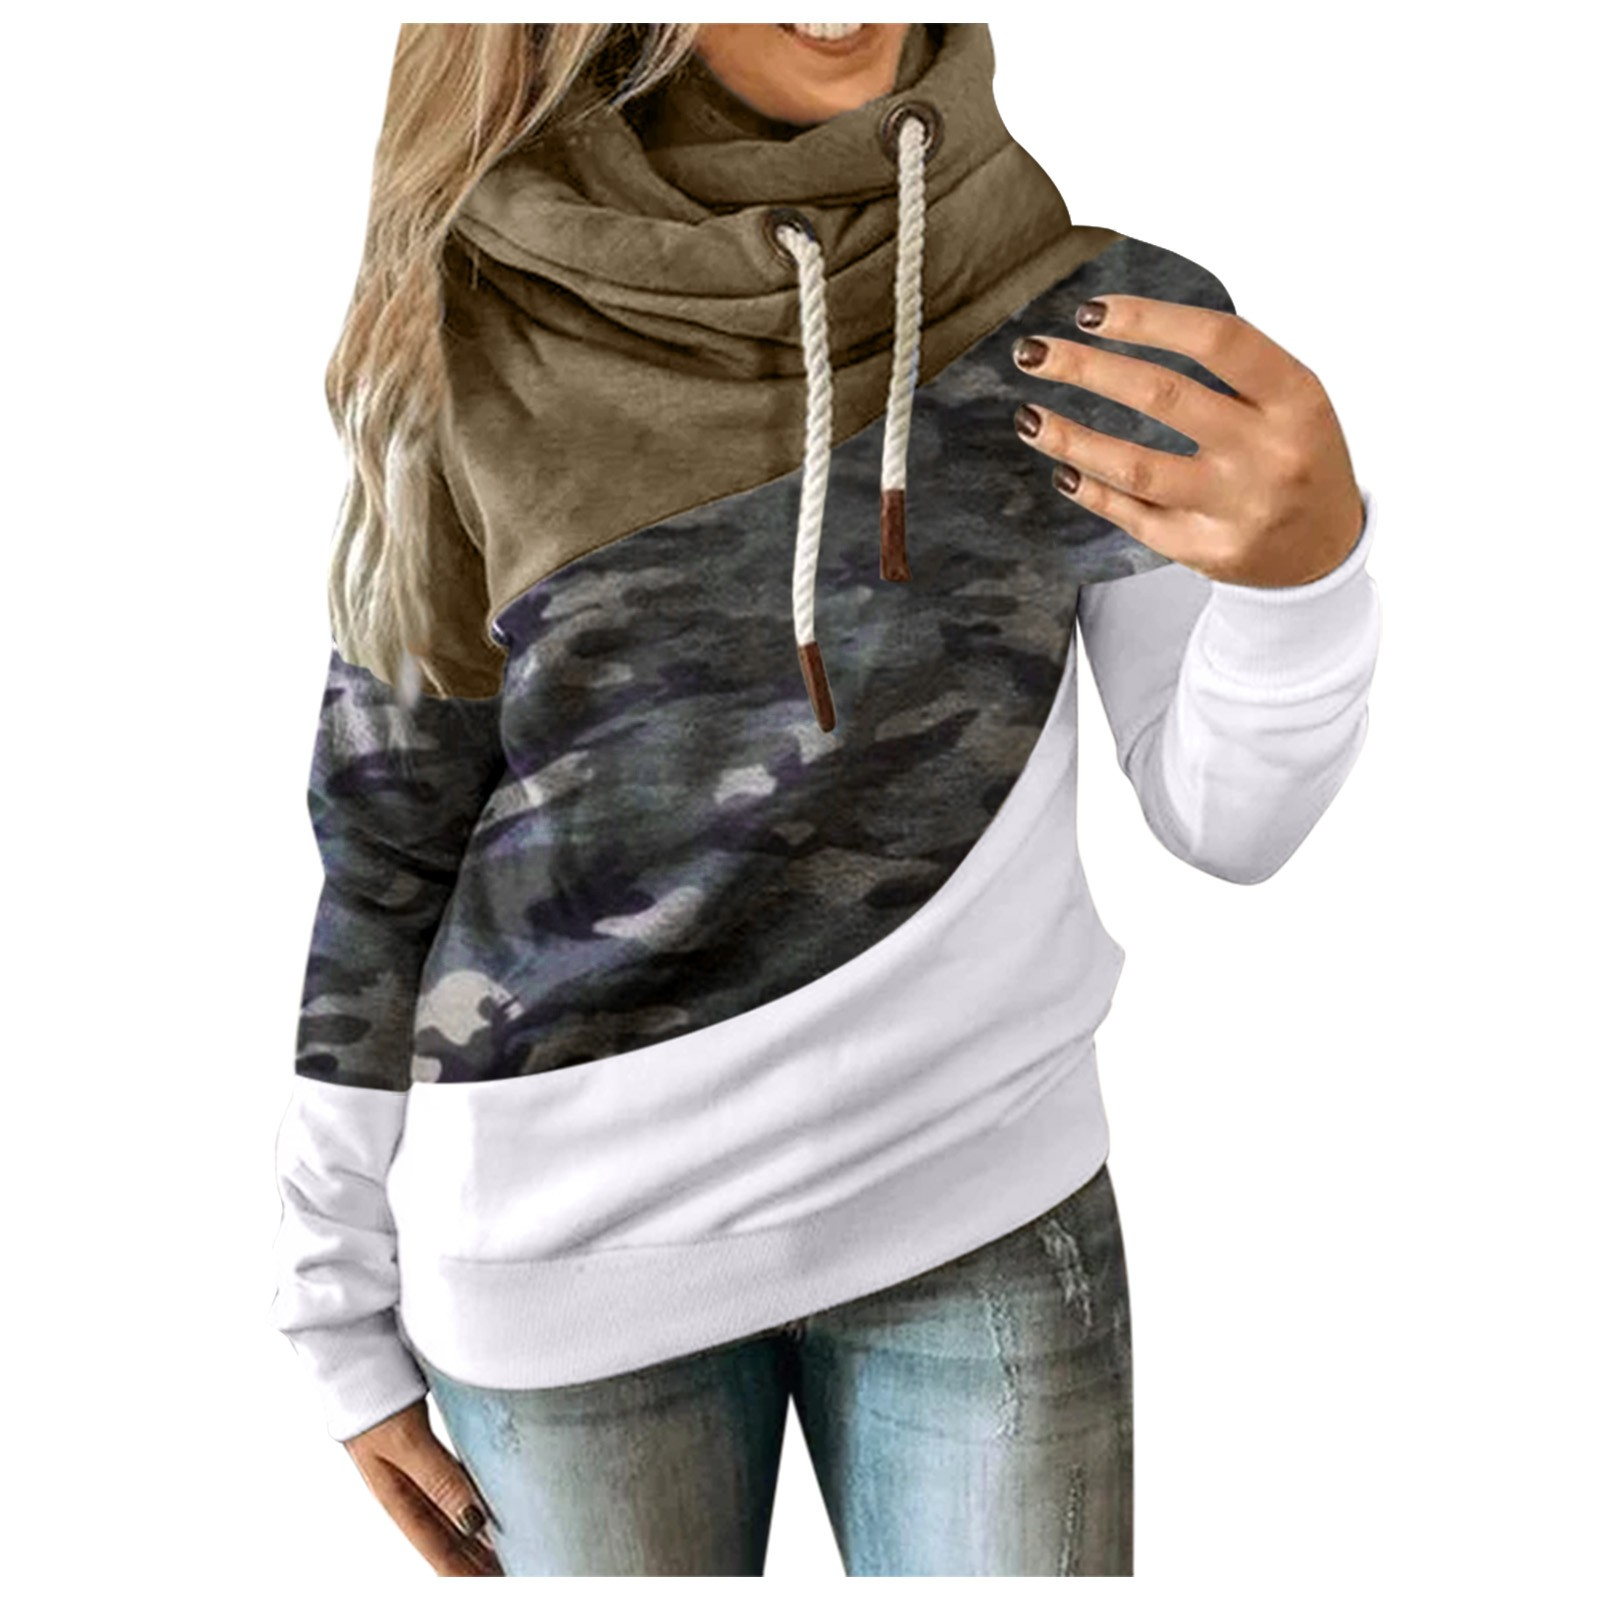 Hot Sale Women Casual Solid Contrast Long Sleeve Hoodie Sweatshirt Patchwork Printed Tops Sudaderas Mujer 2020 F Fast Ship 9